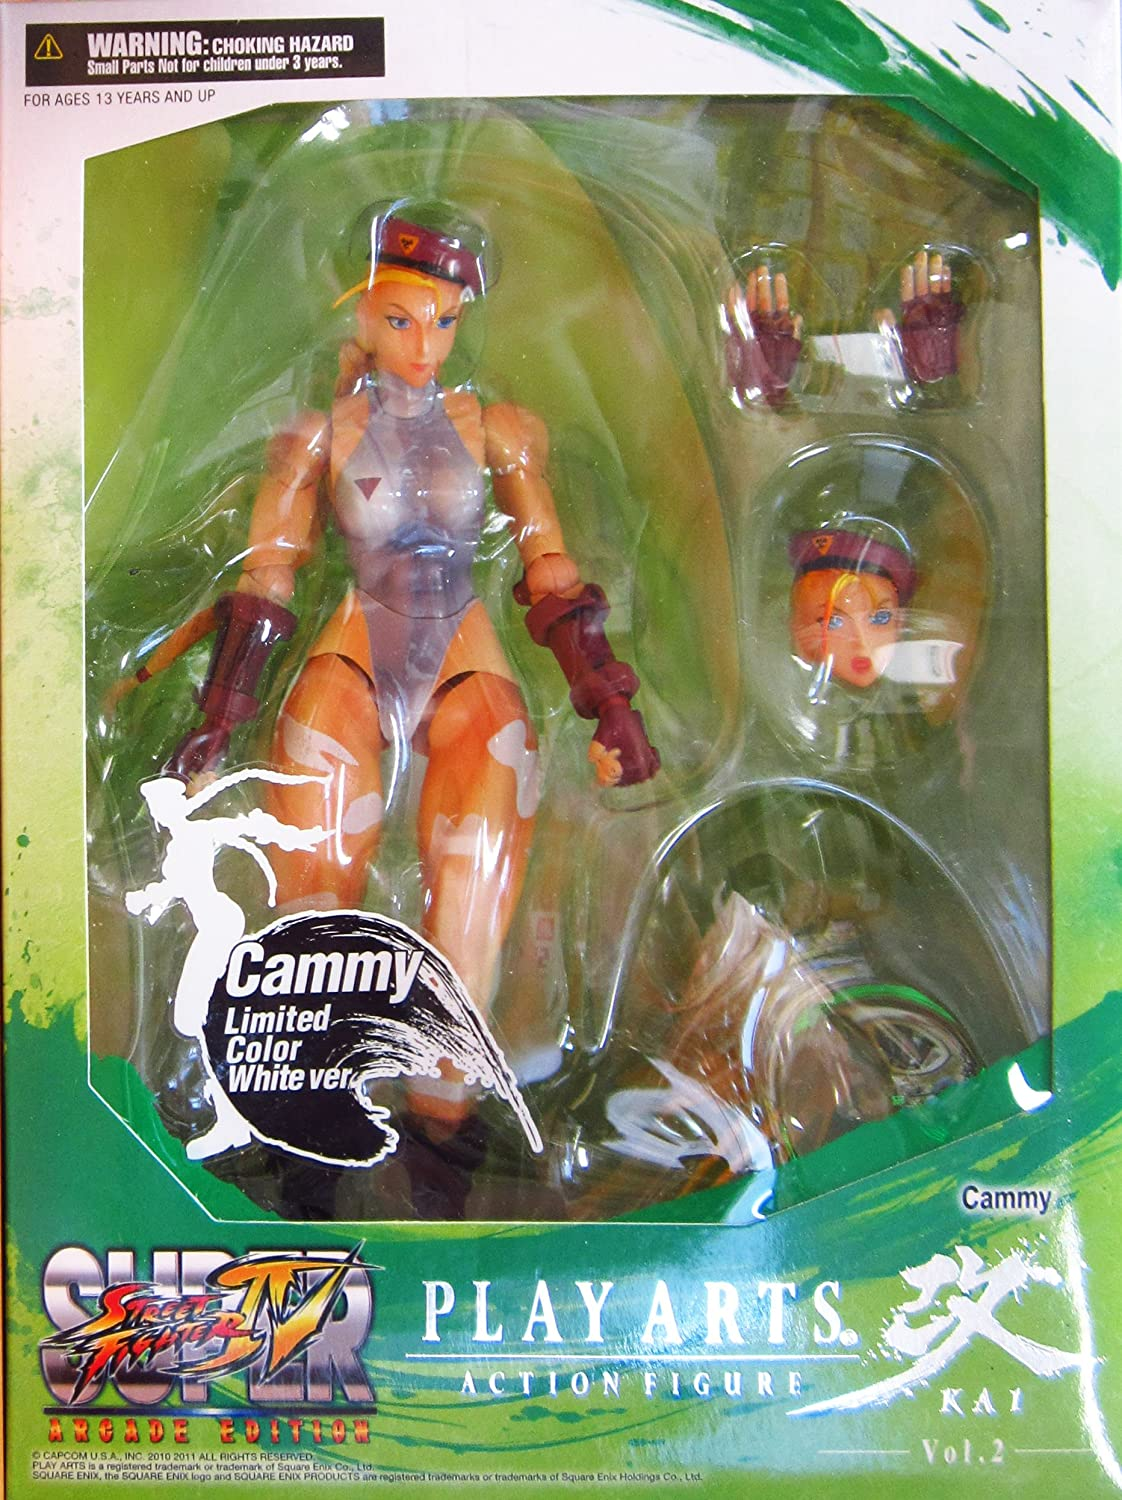 Square - Enix - Figurine - Street Fighter - Square Play Arts Kai - Cammy - Limited color Weiß version - 0583215029047 76ad5d